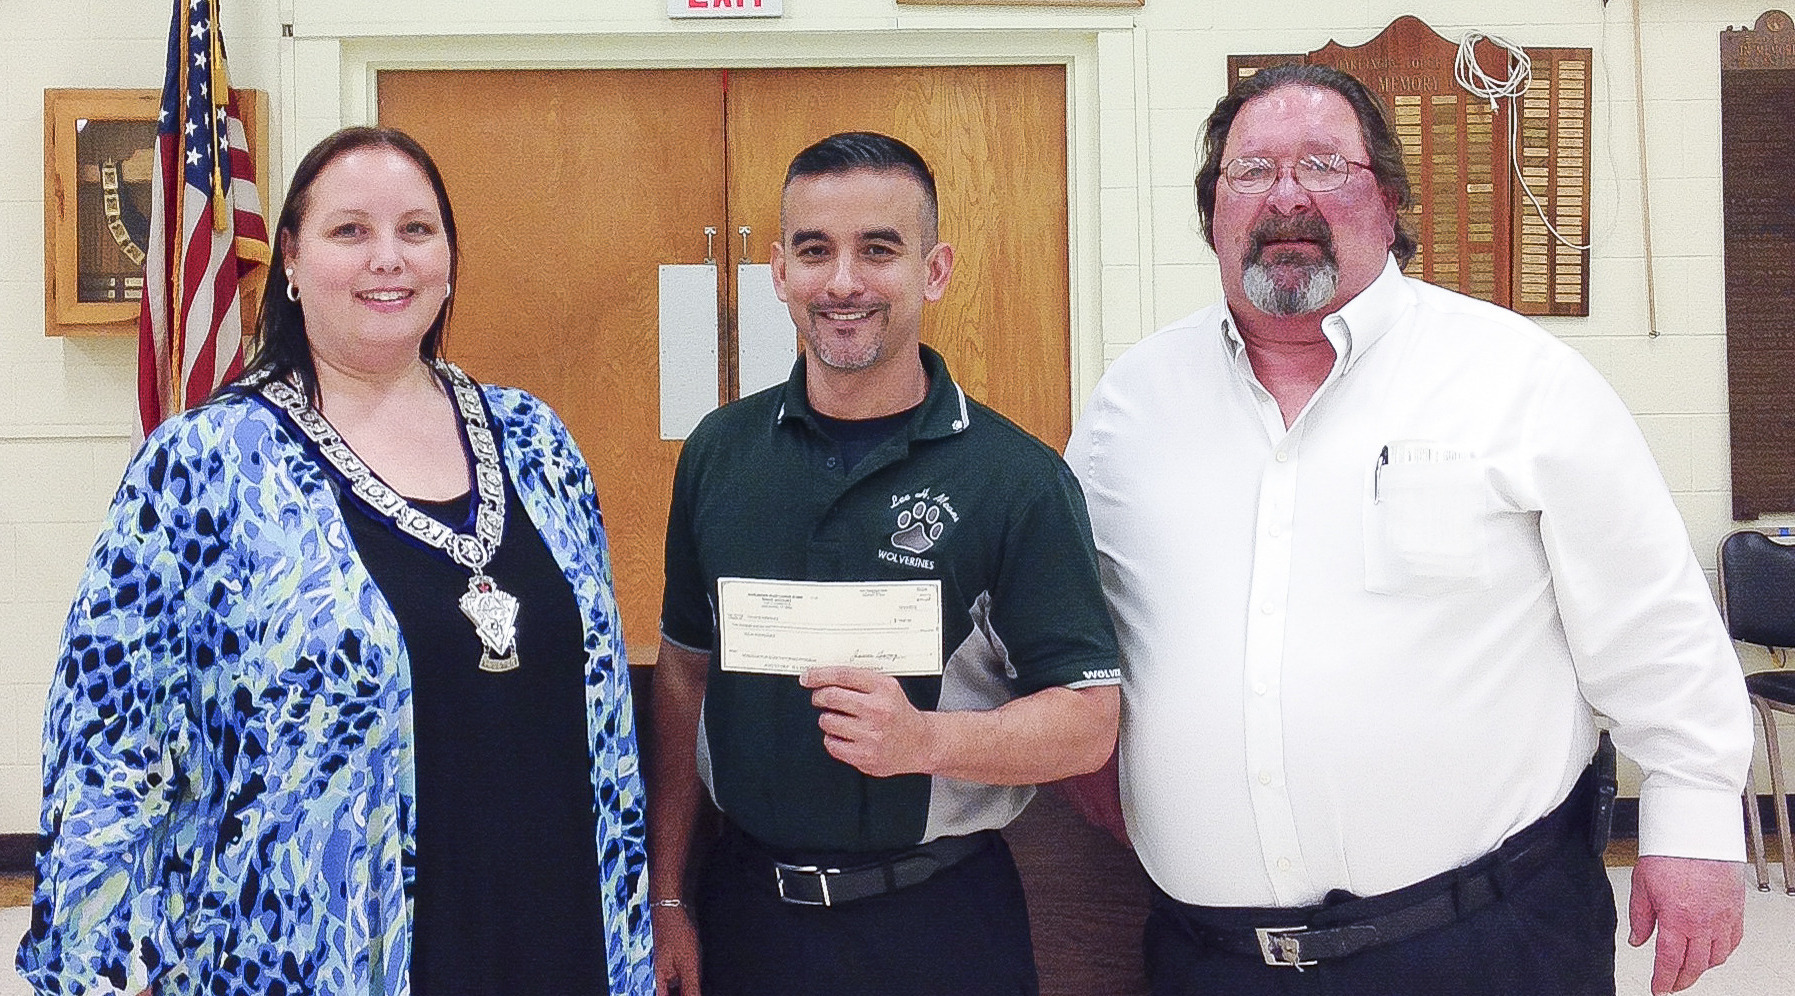 Elks Lodge awards Lee Means teacher $500 for math program